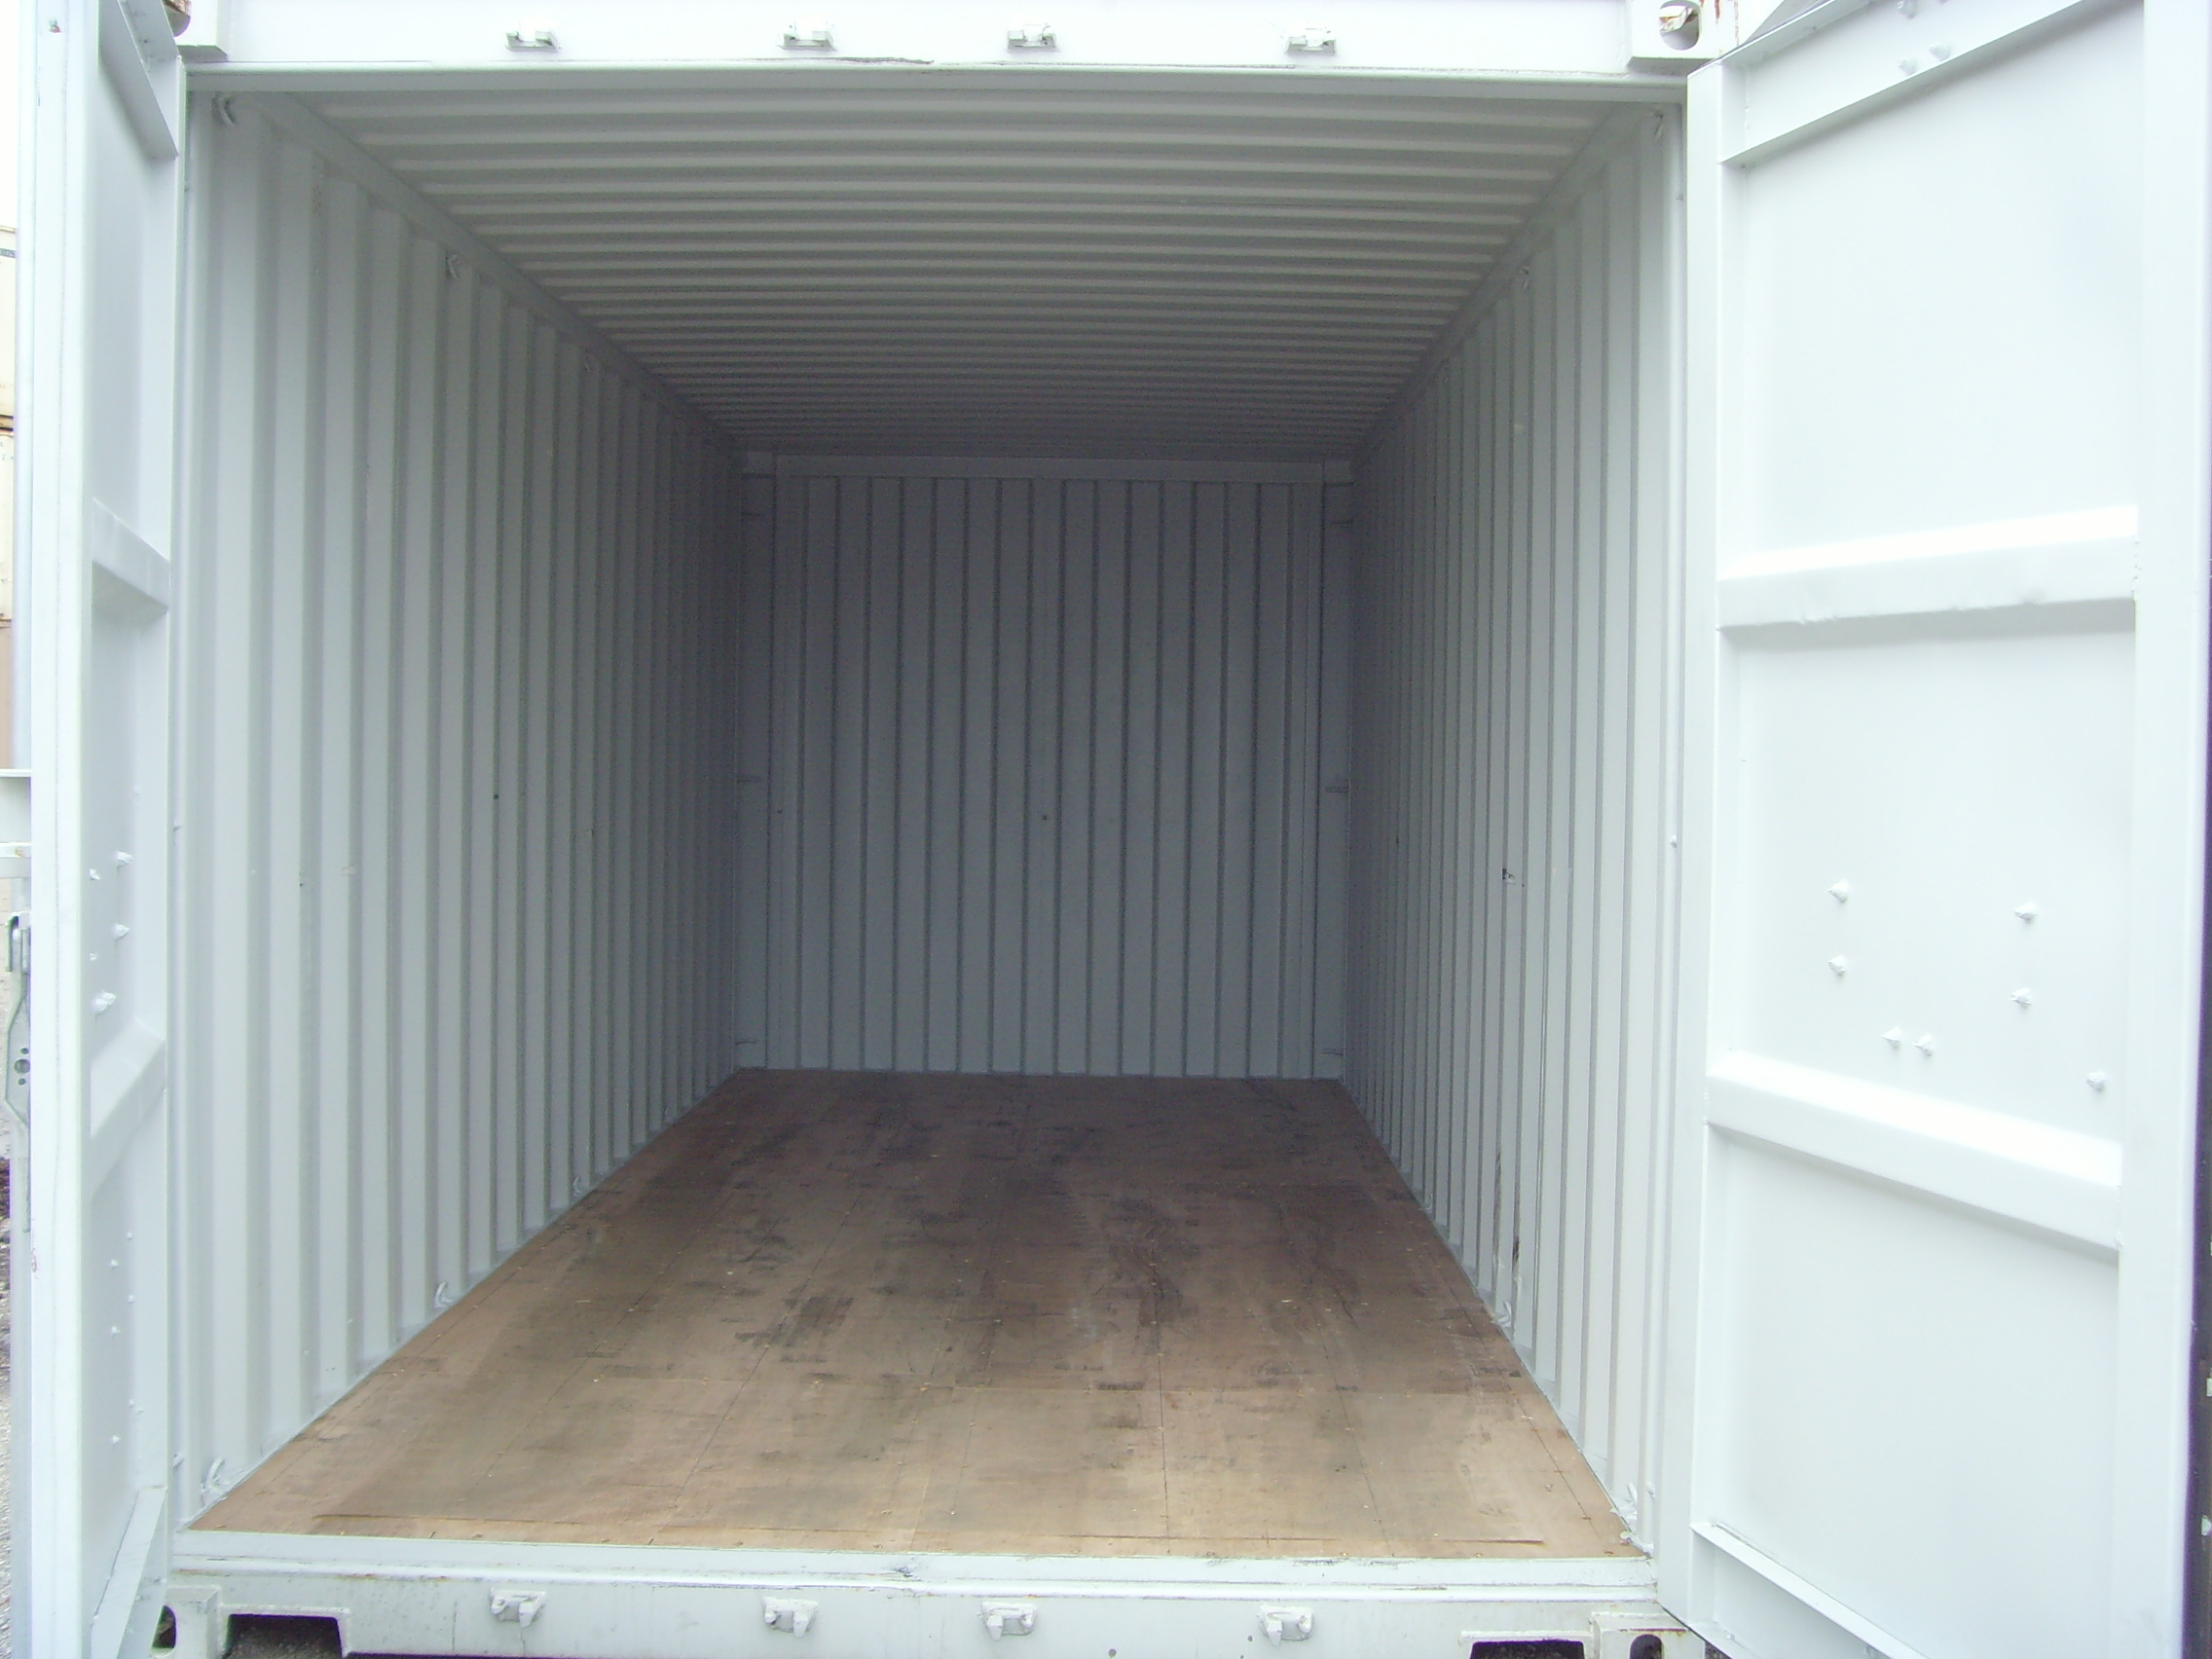 Container Floors A close up look Shipping Containers at a Fair